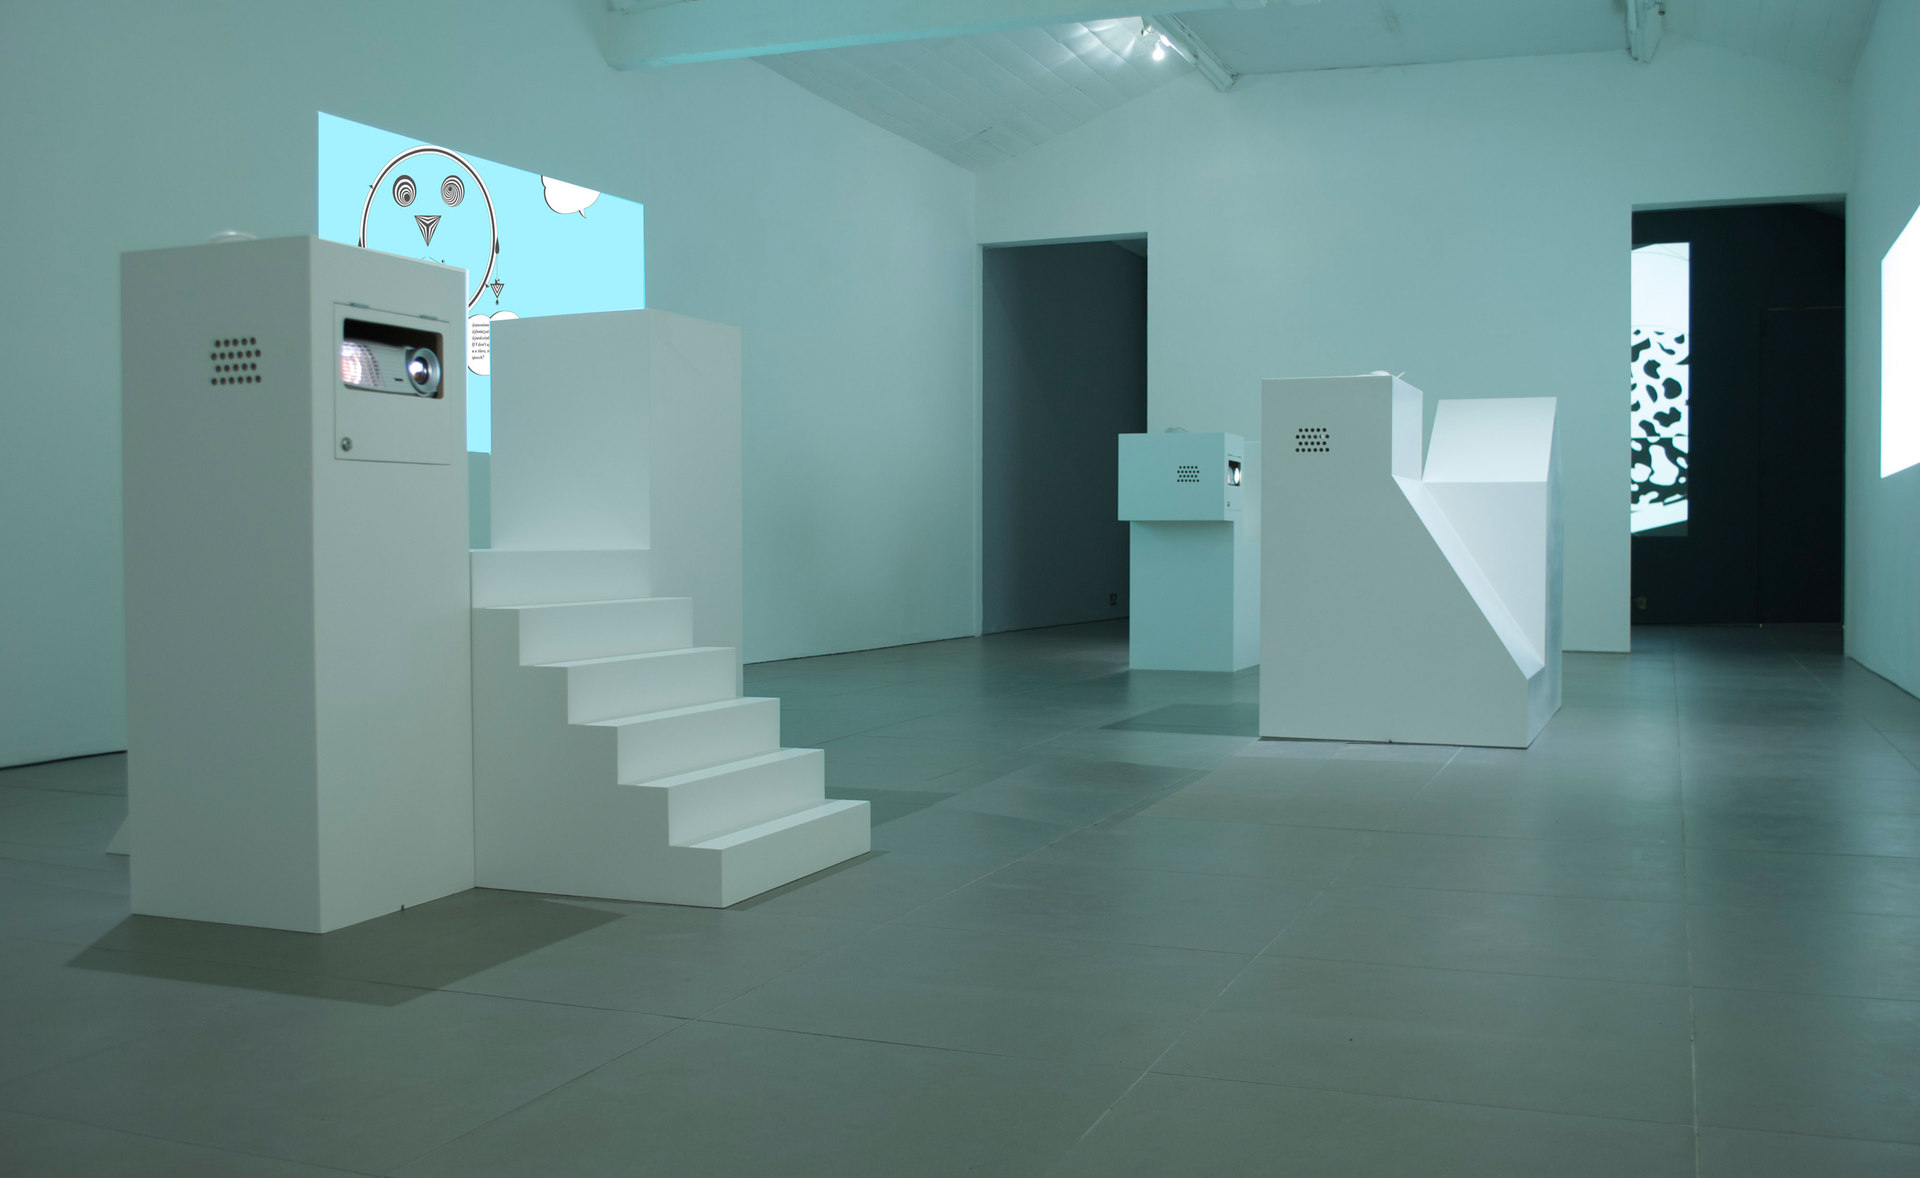 Angelo Plessas, Twilight Of The Idols, Every Website is a Monument, 2012, installation view, Cell Project Space